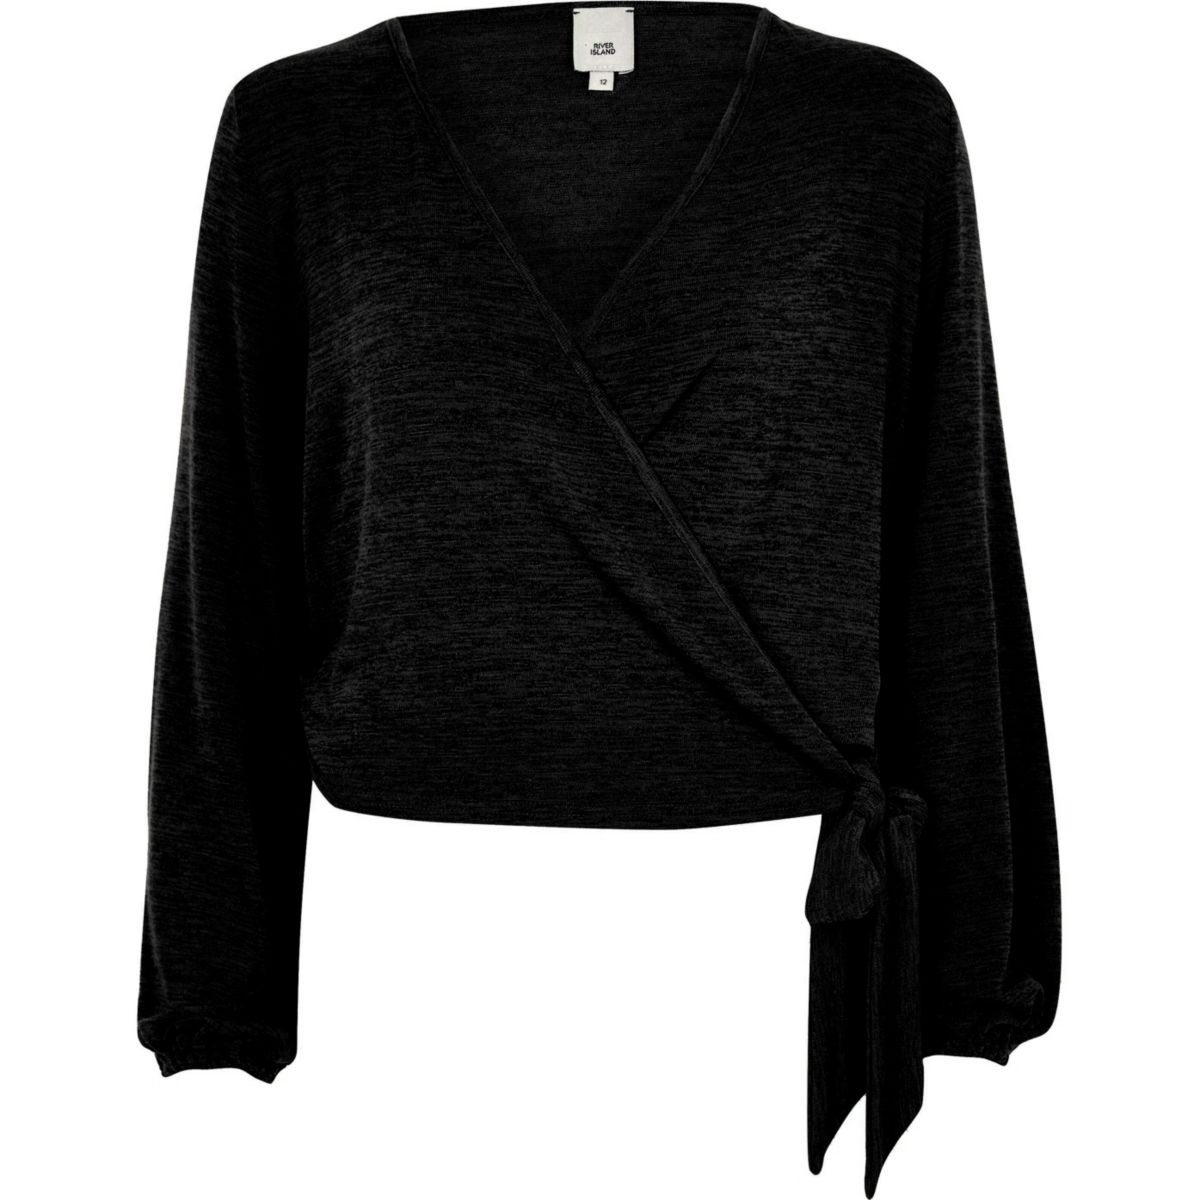 Black knit wrap ballet top